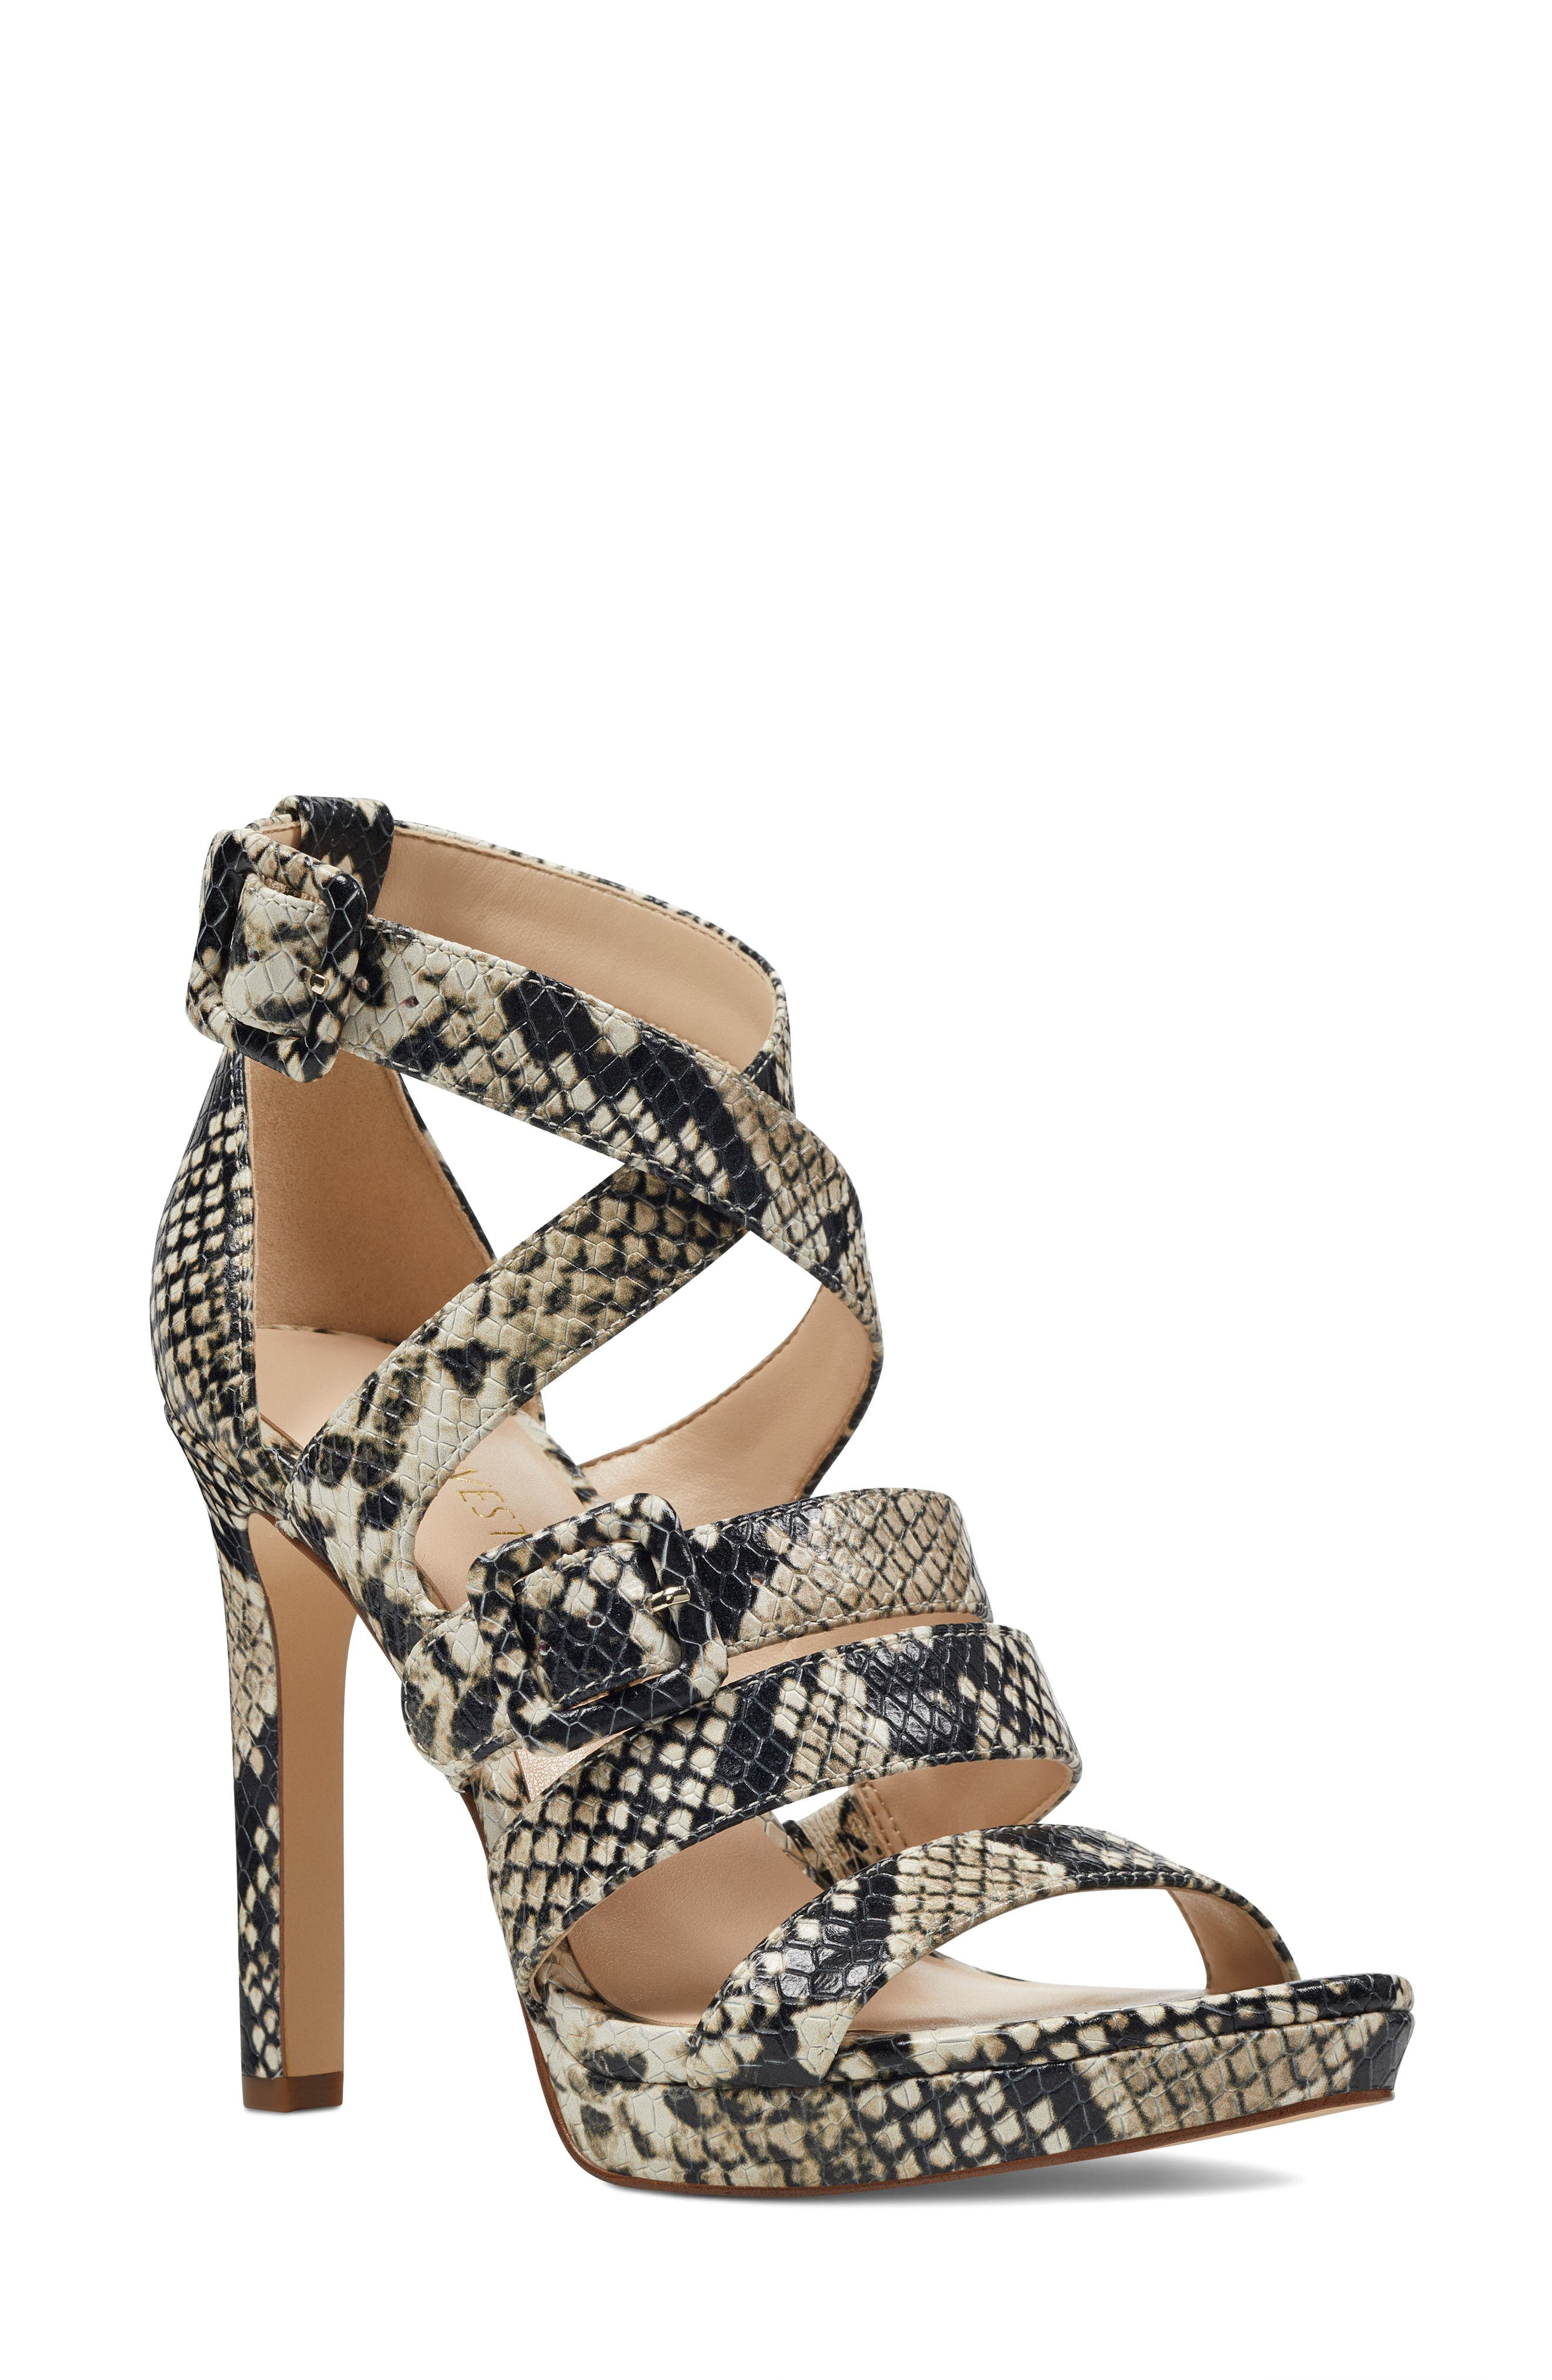 Tarykah Strappy Sandal,                             Main thumbnail 1, color,                             Off White Leather